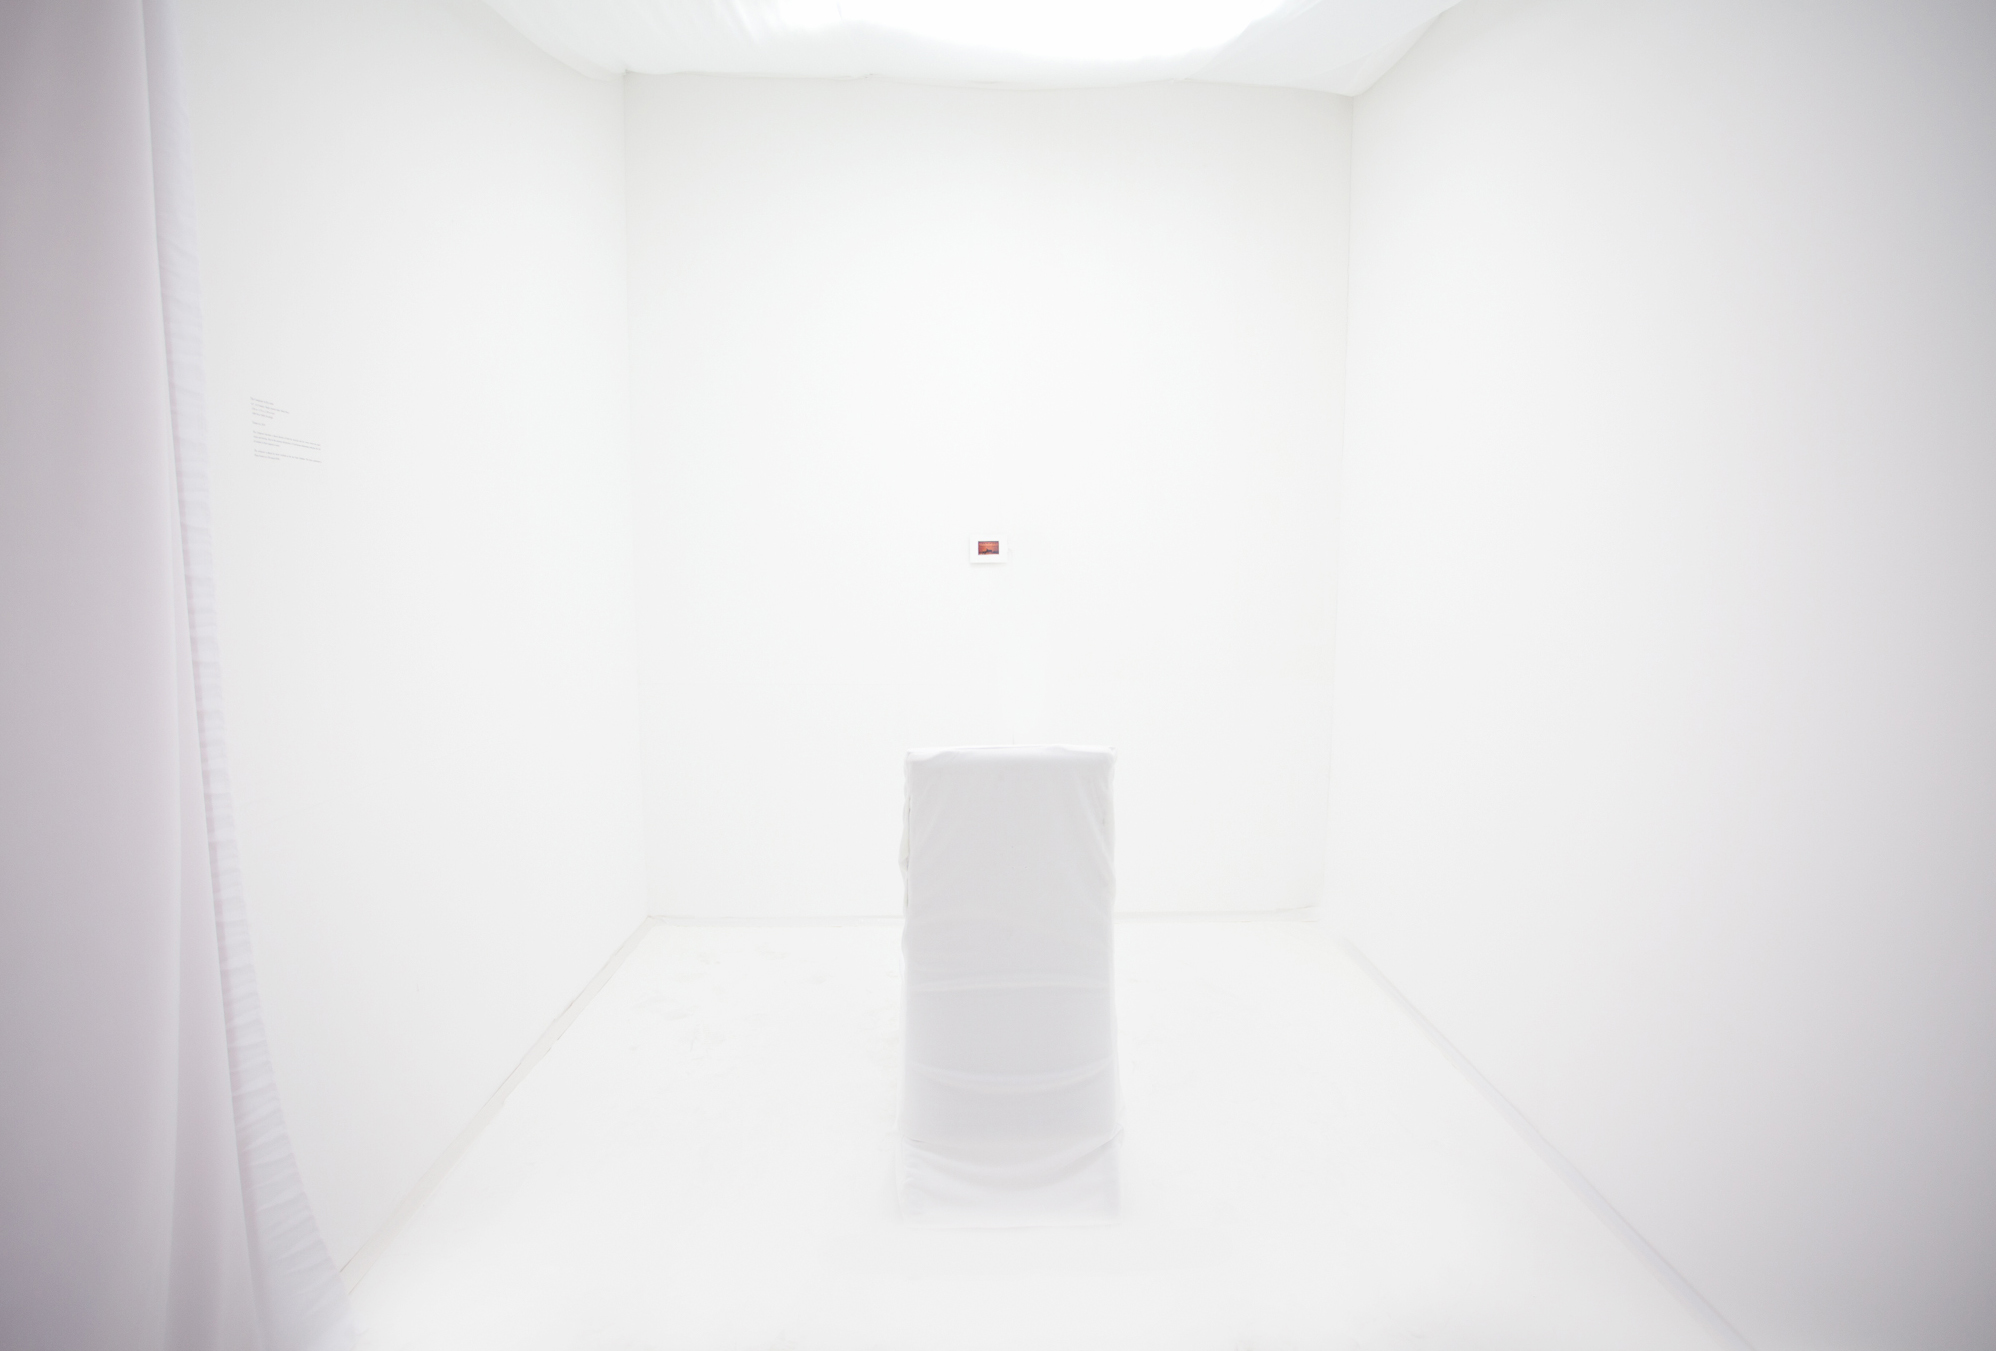 Installation View. Composer in His Room. 2011